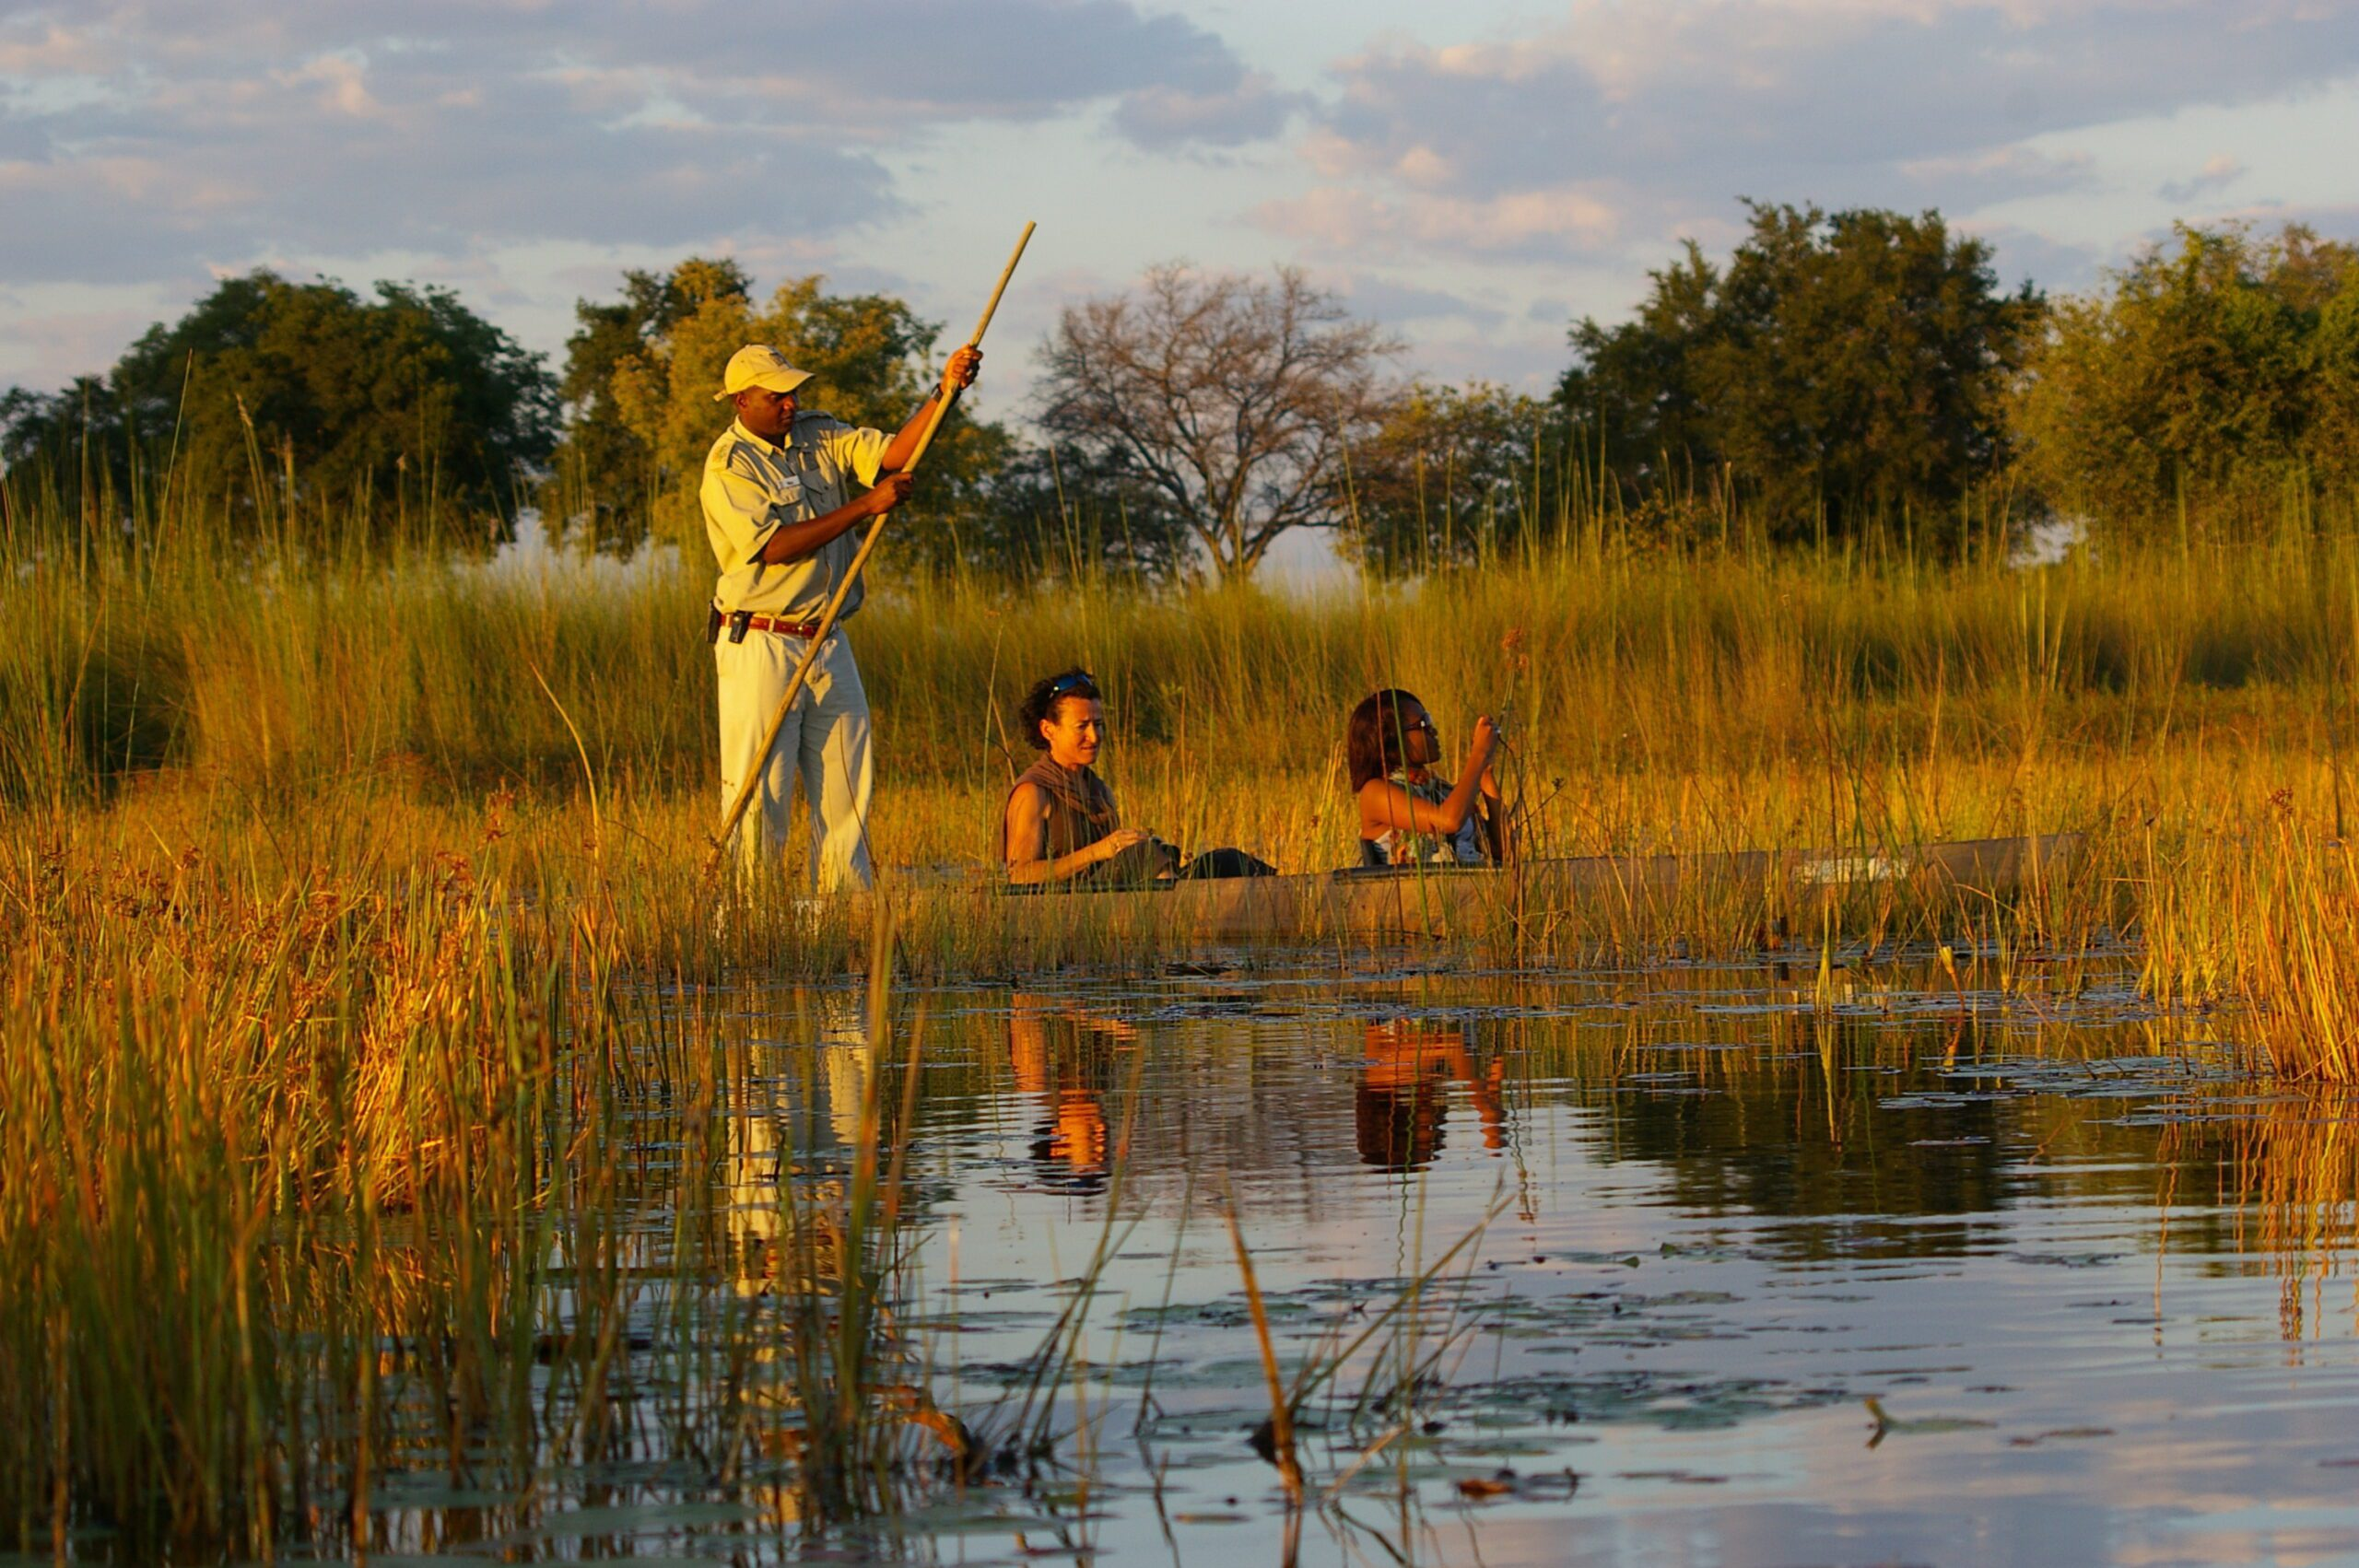 mokoro in the waterways of okavango delta at xugana camp with 2 people and 1 guide